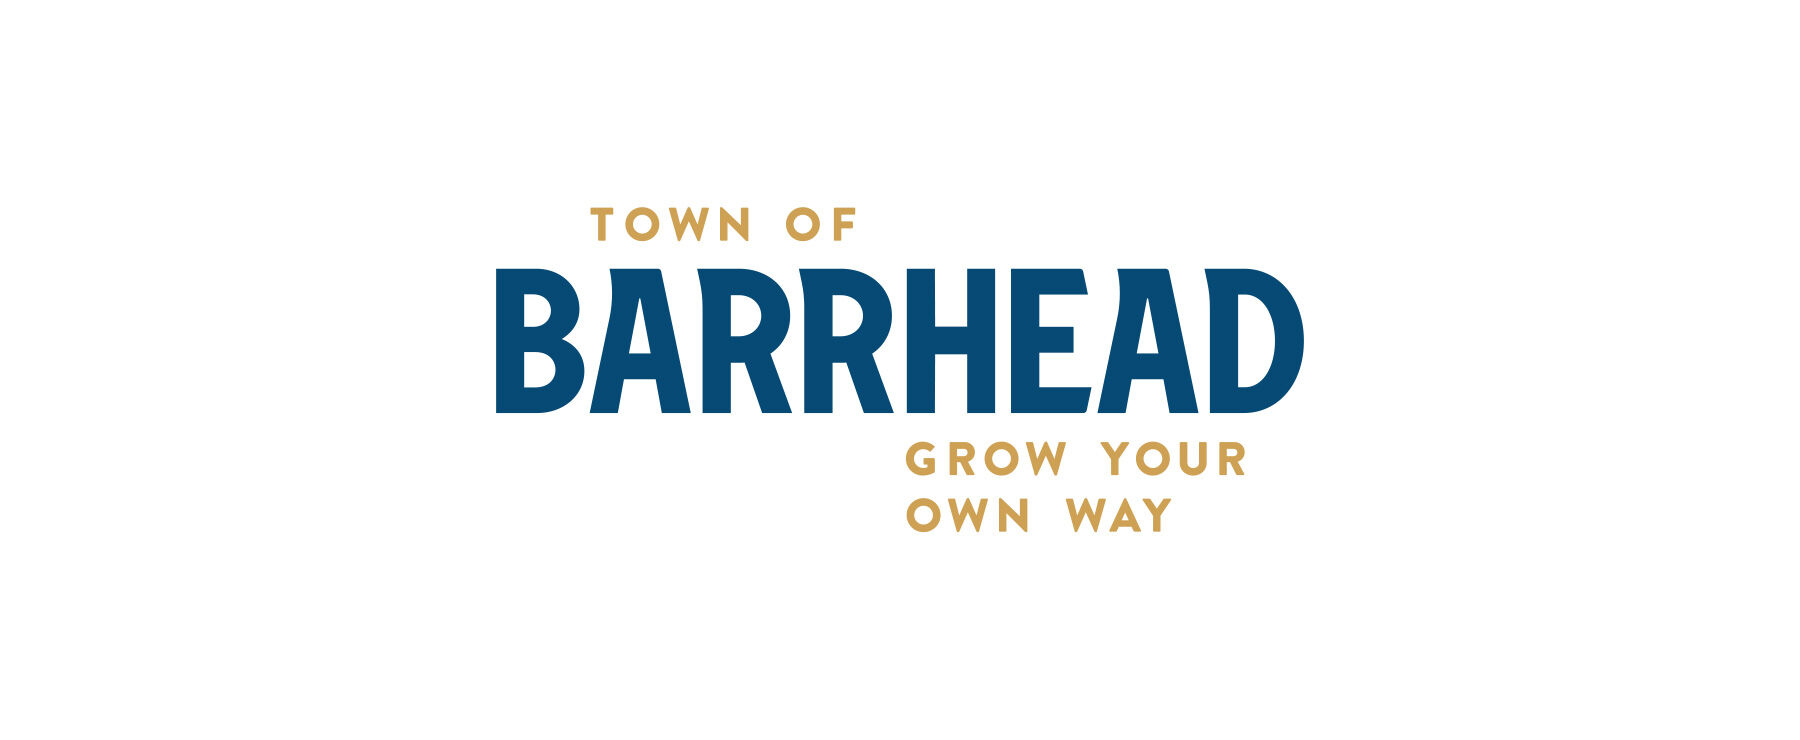 Town of Barrhead Logo with Tagline on white background